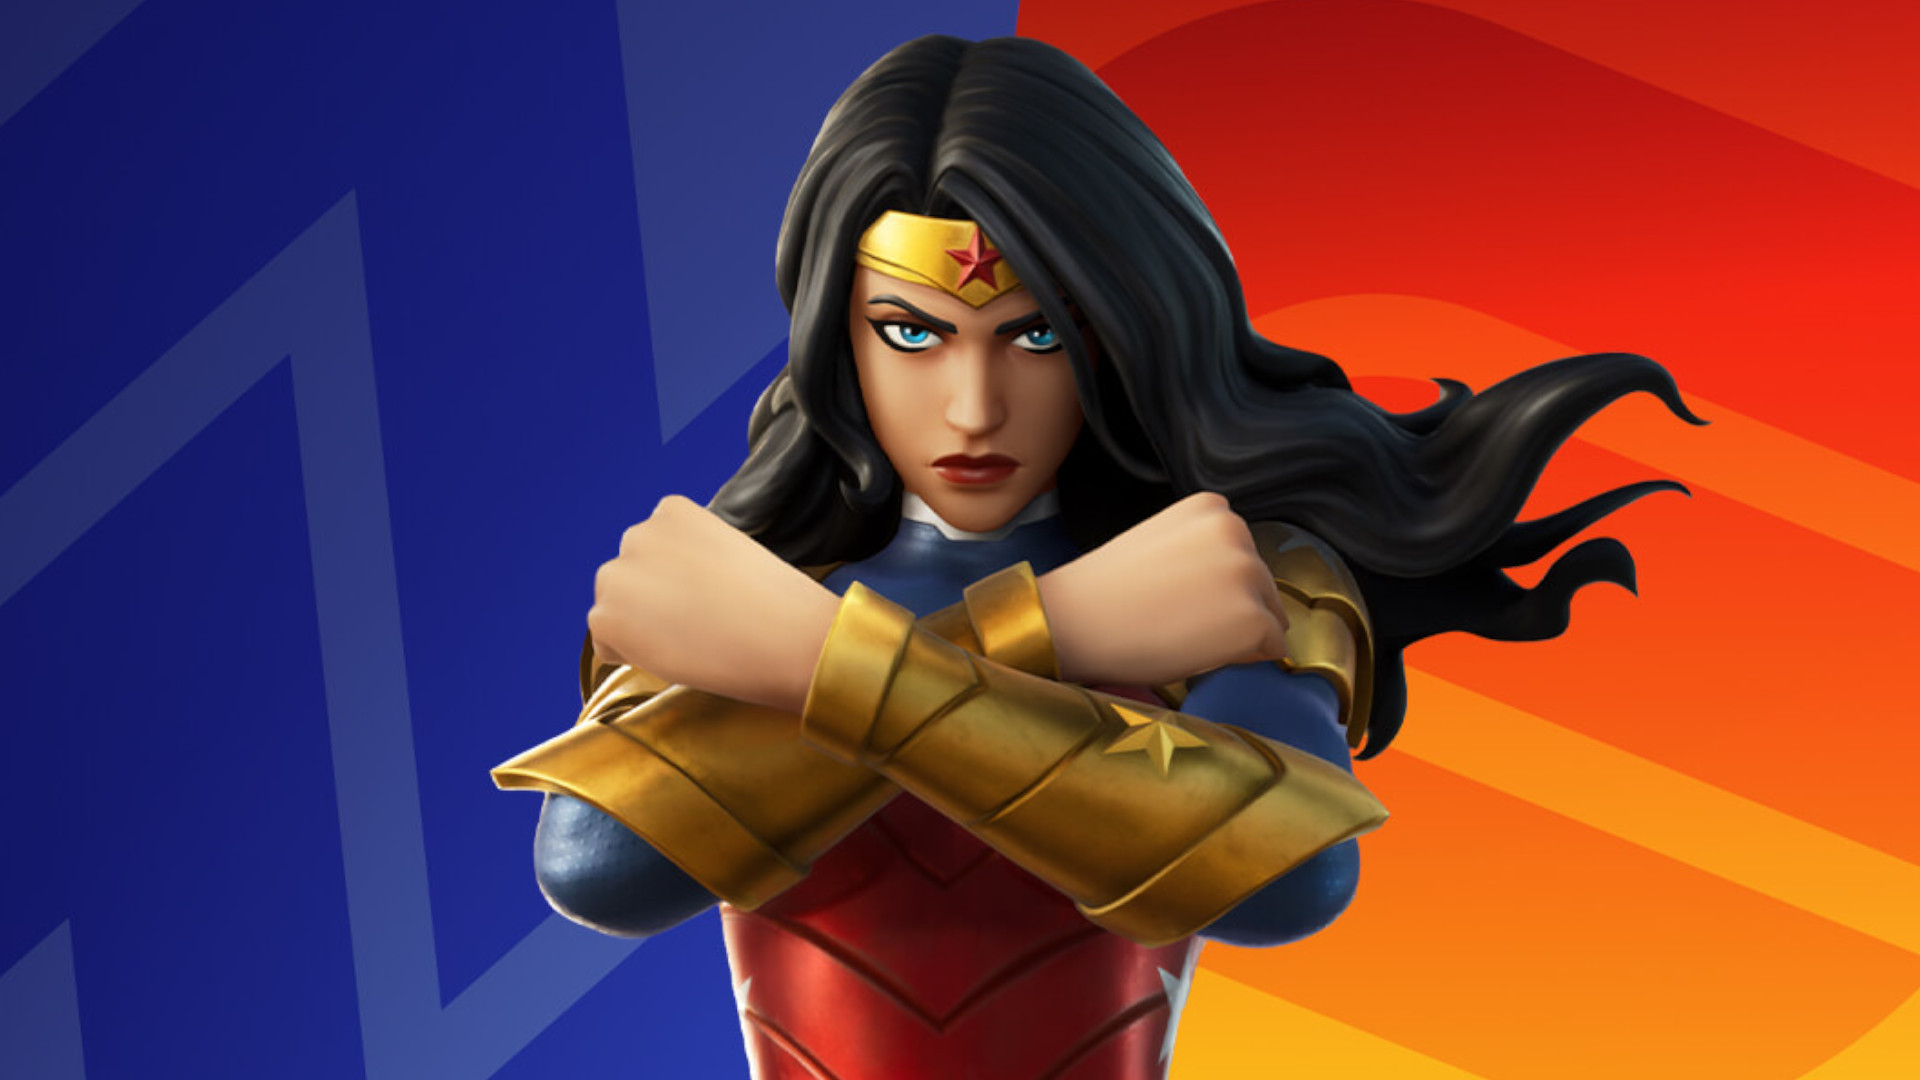 Wonder Woman comes to Fortnite, and you can win her for free